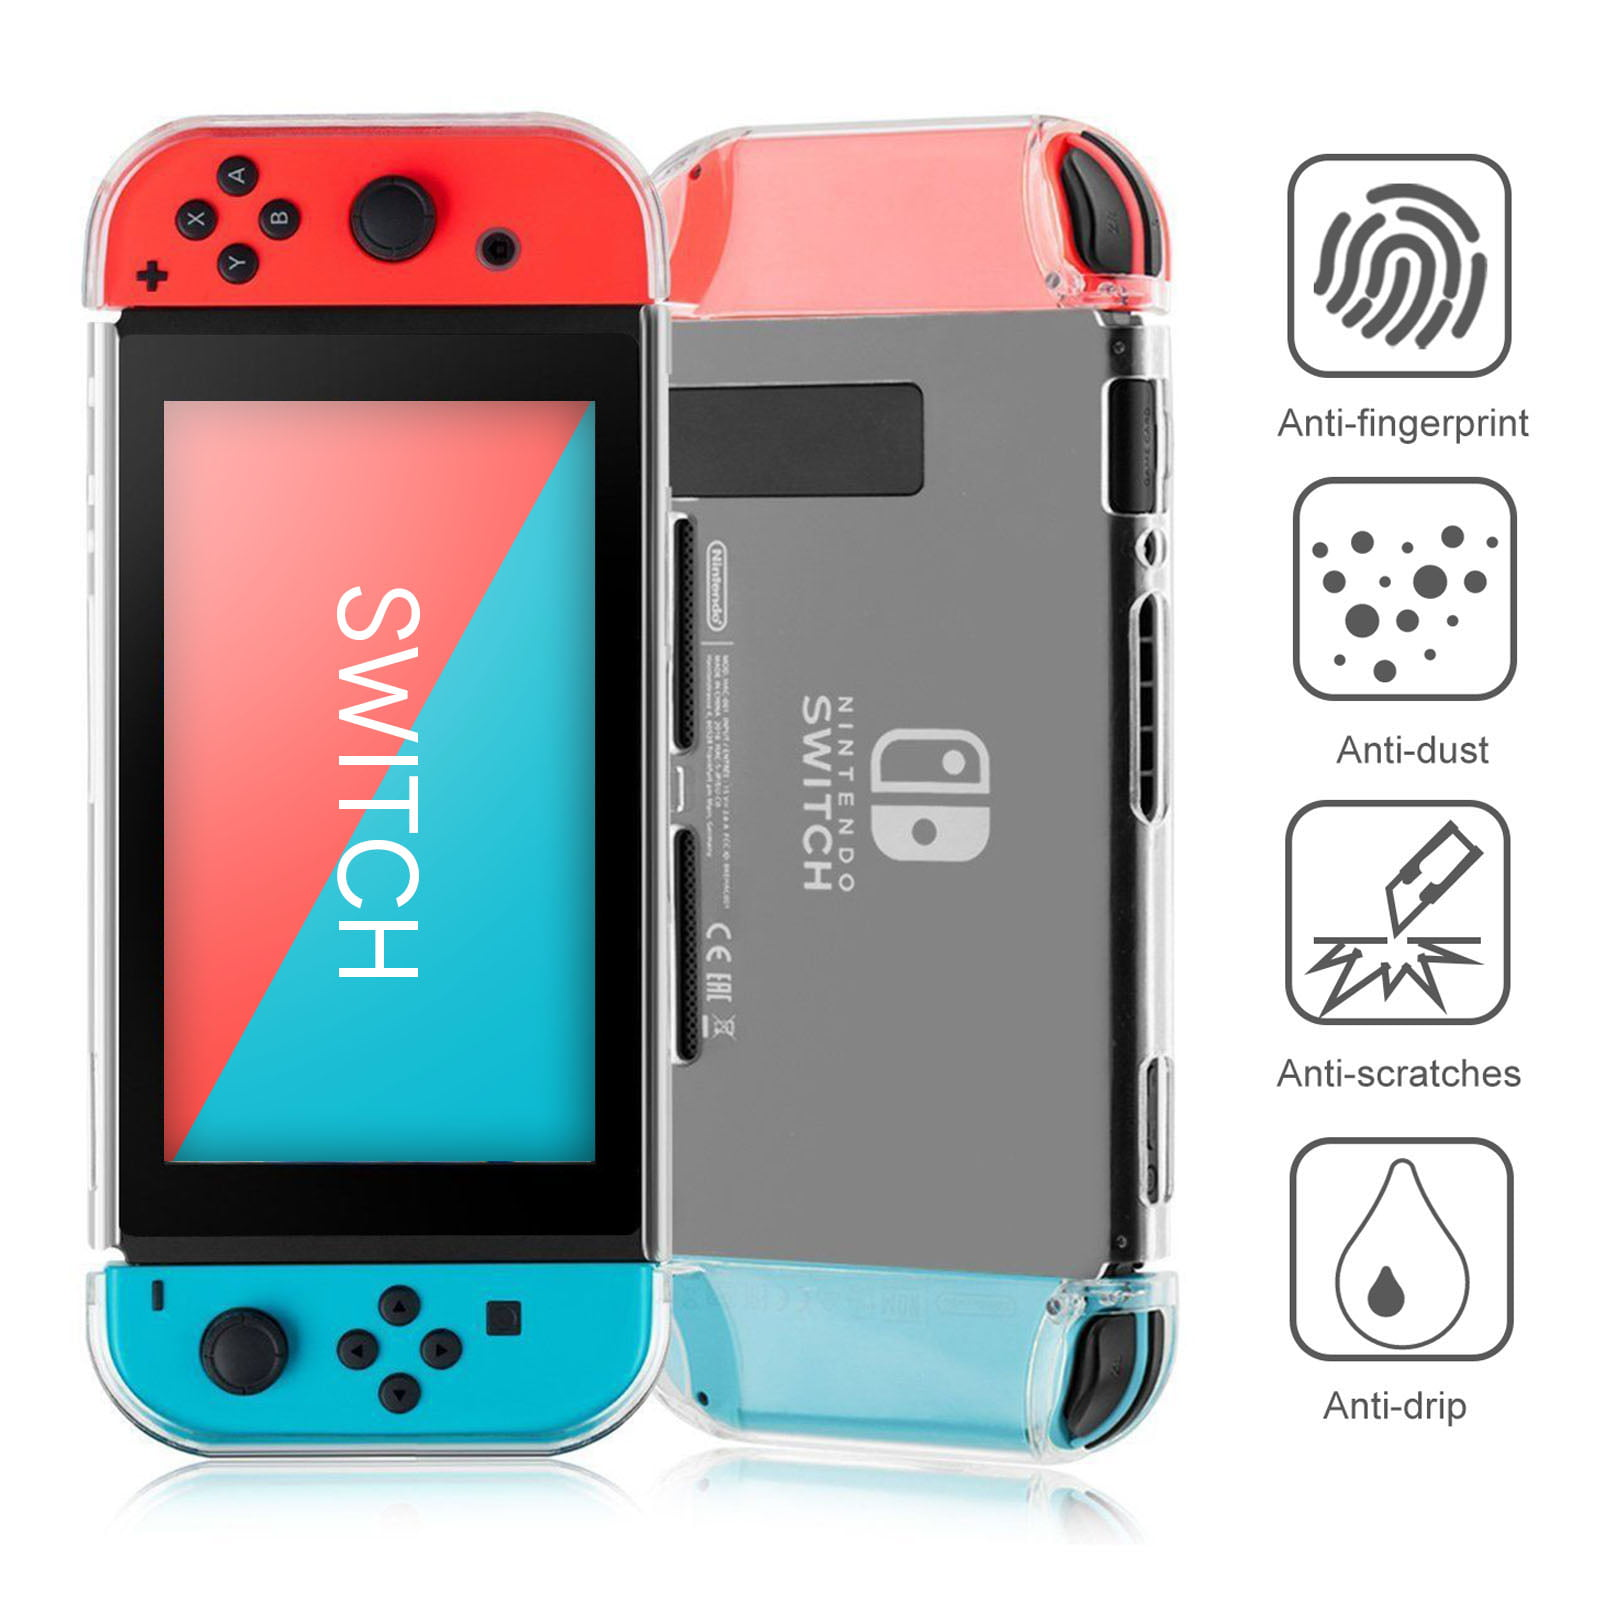 reputable site 92fe2 9cdc9 TSV Transparent Clear Shockproof Protective Hard Shell Case Cover Skin for  Nintendo Switch